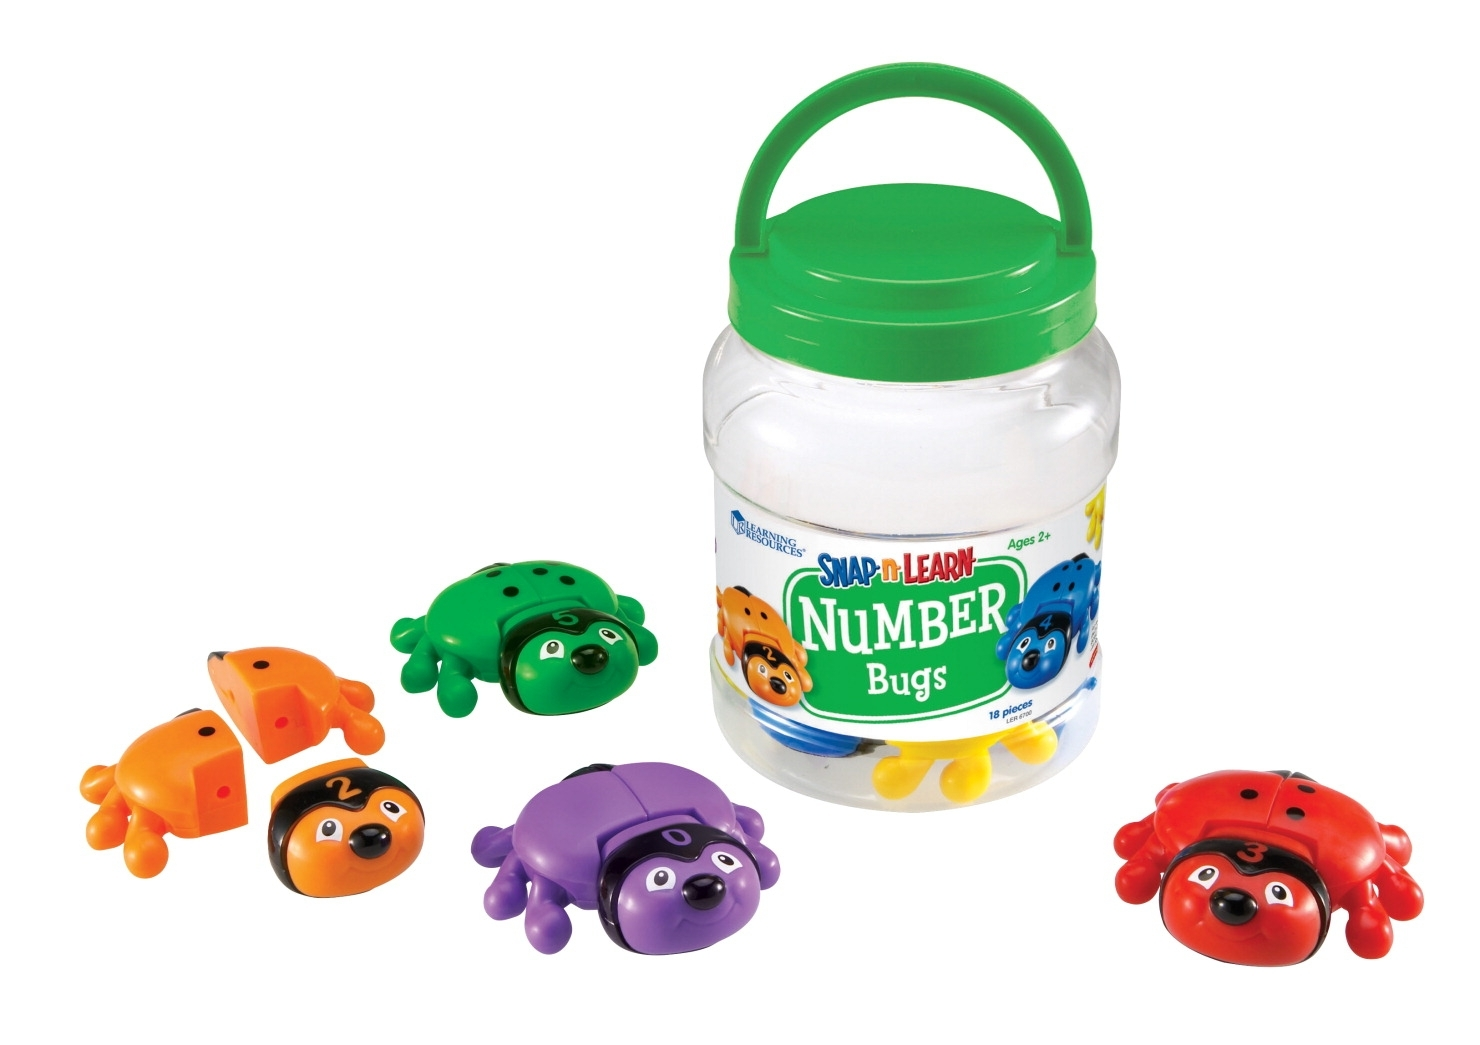 Learning: Supplies Classroom Supplies Math Numbers & Counting - 1327516 - Learning Resources Snap-n-learn Number Bugs; 18 Pieces 1327516